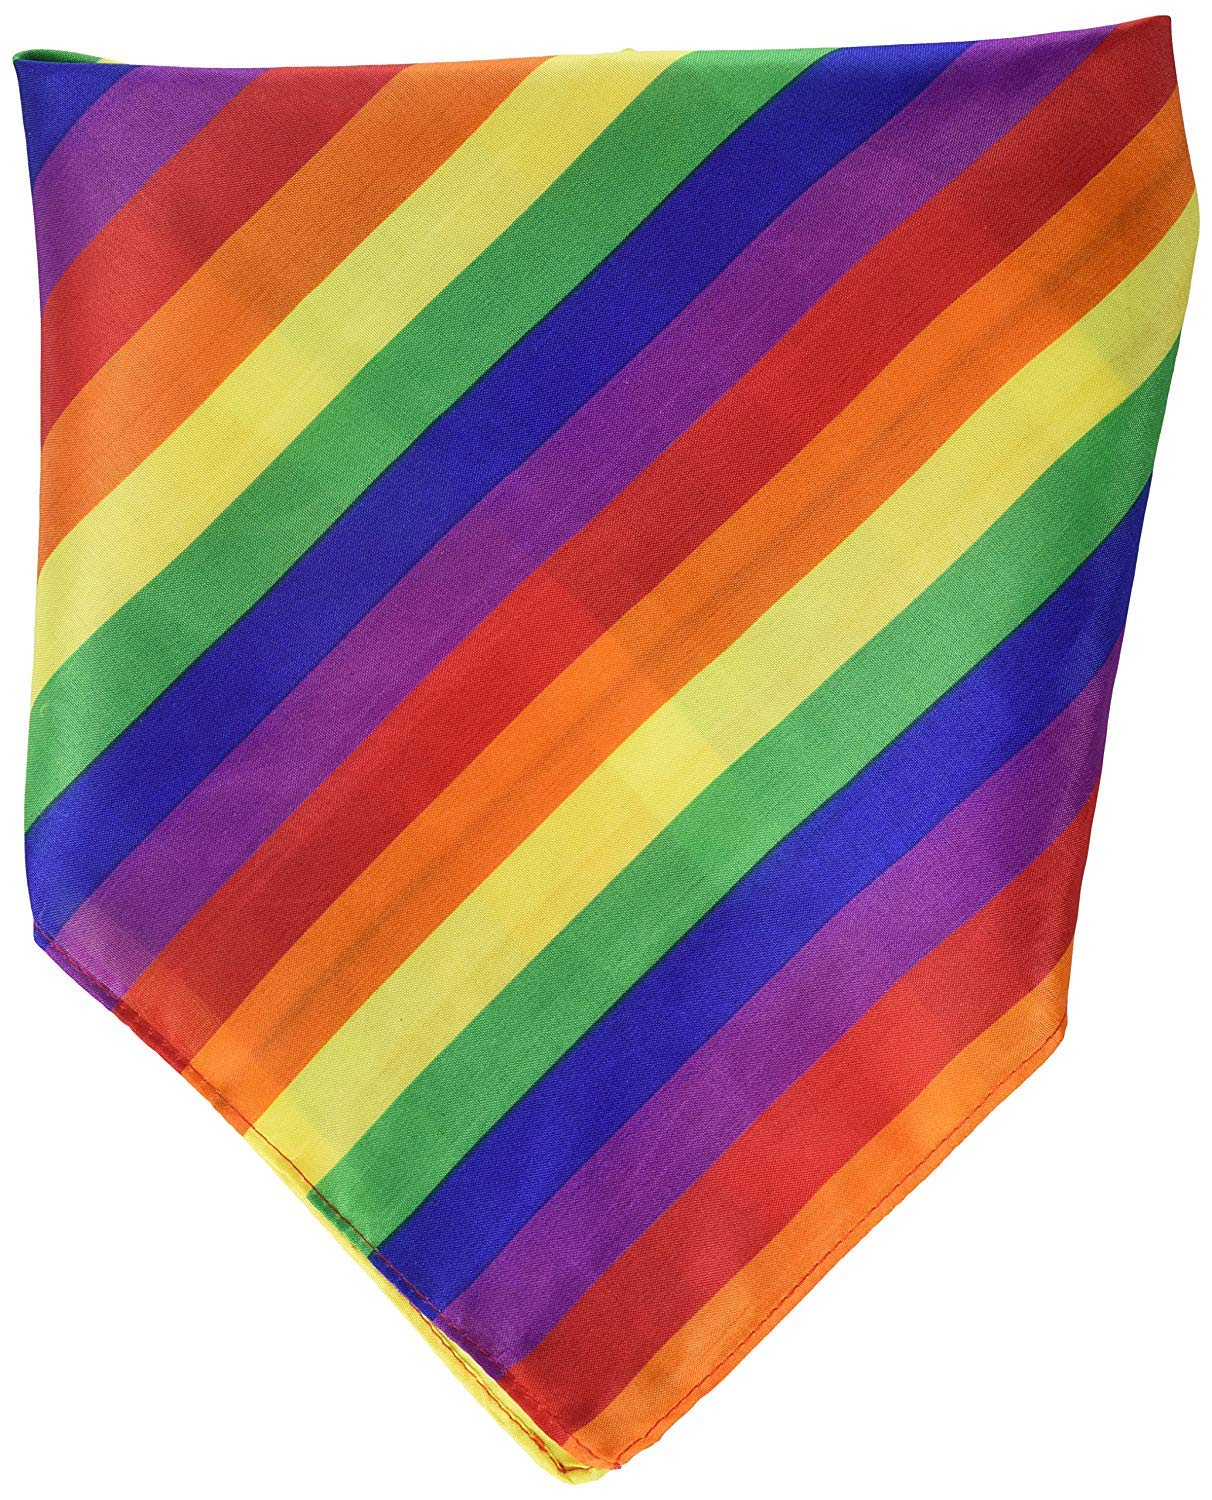 and Bandana Gay Pride Parade Rainbow Bundle Includes Beads Buttons